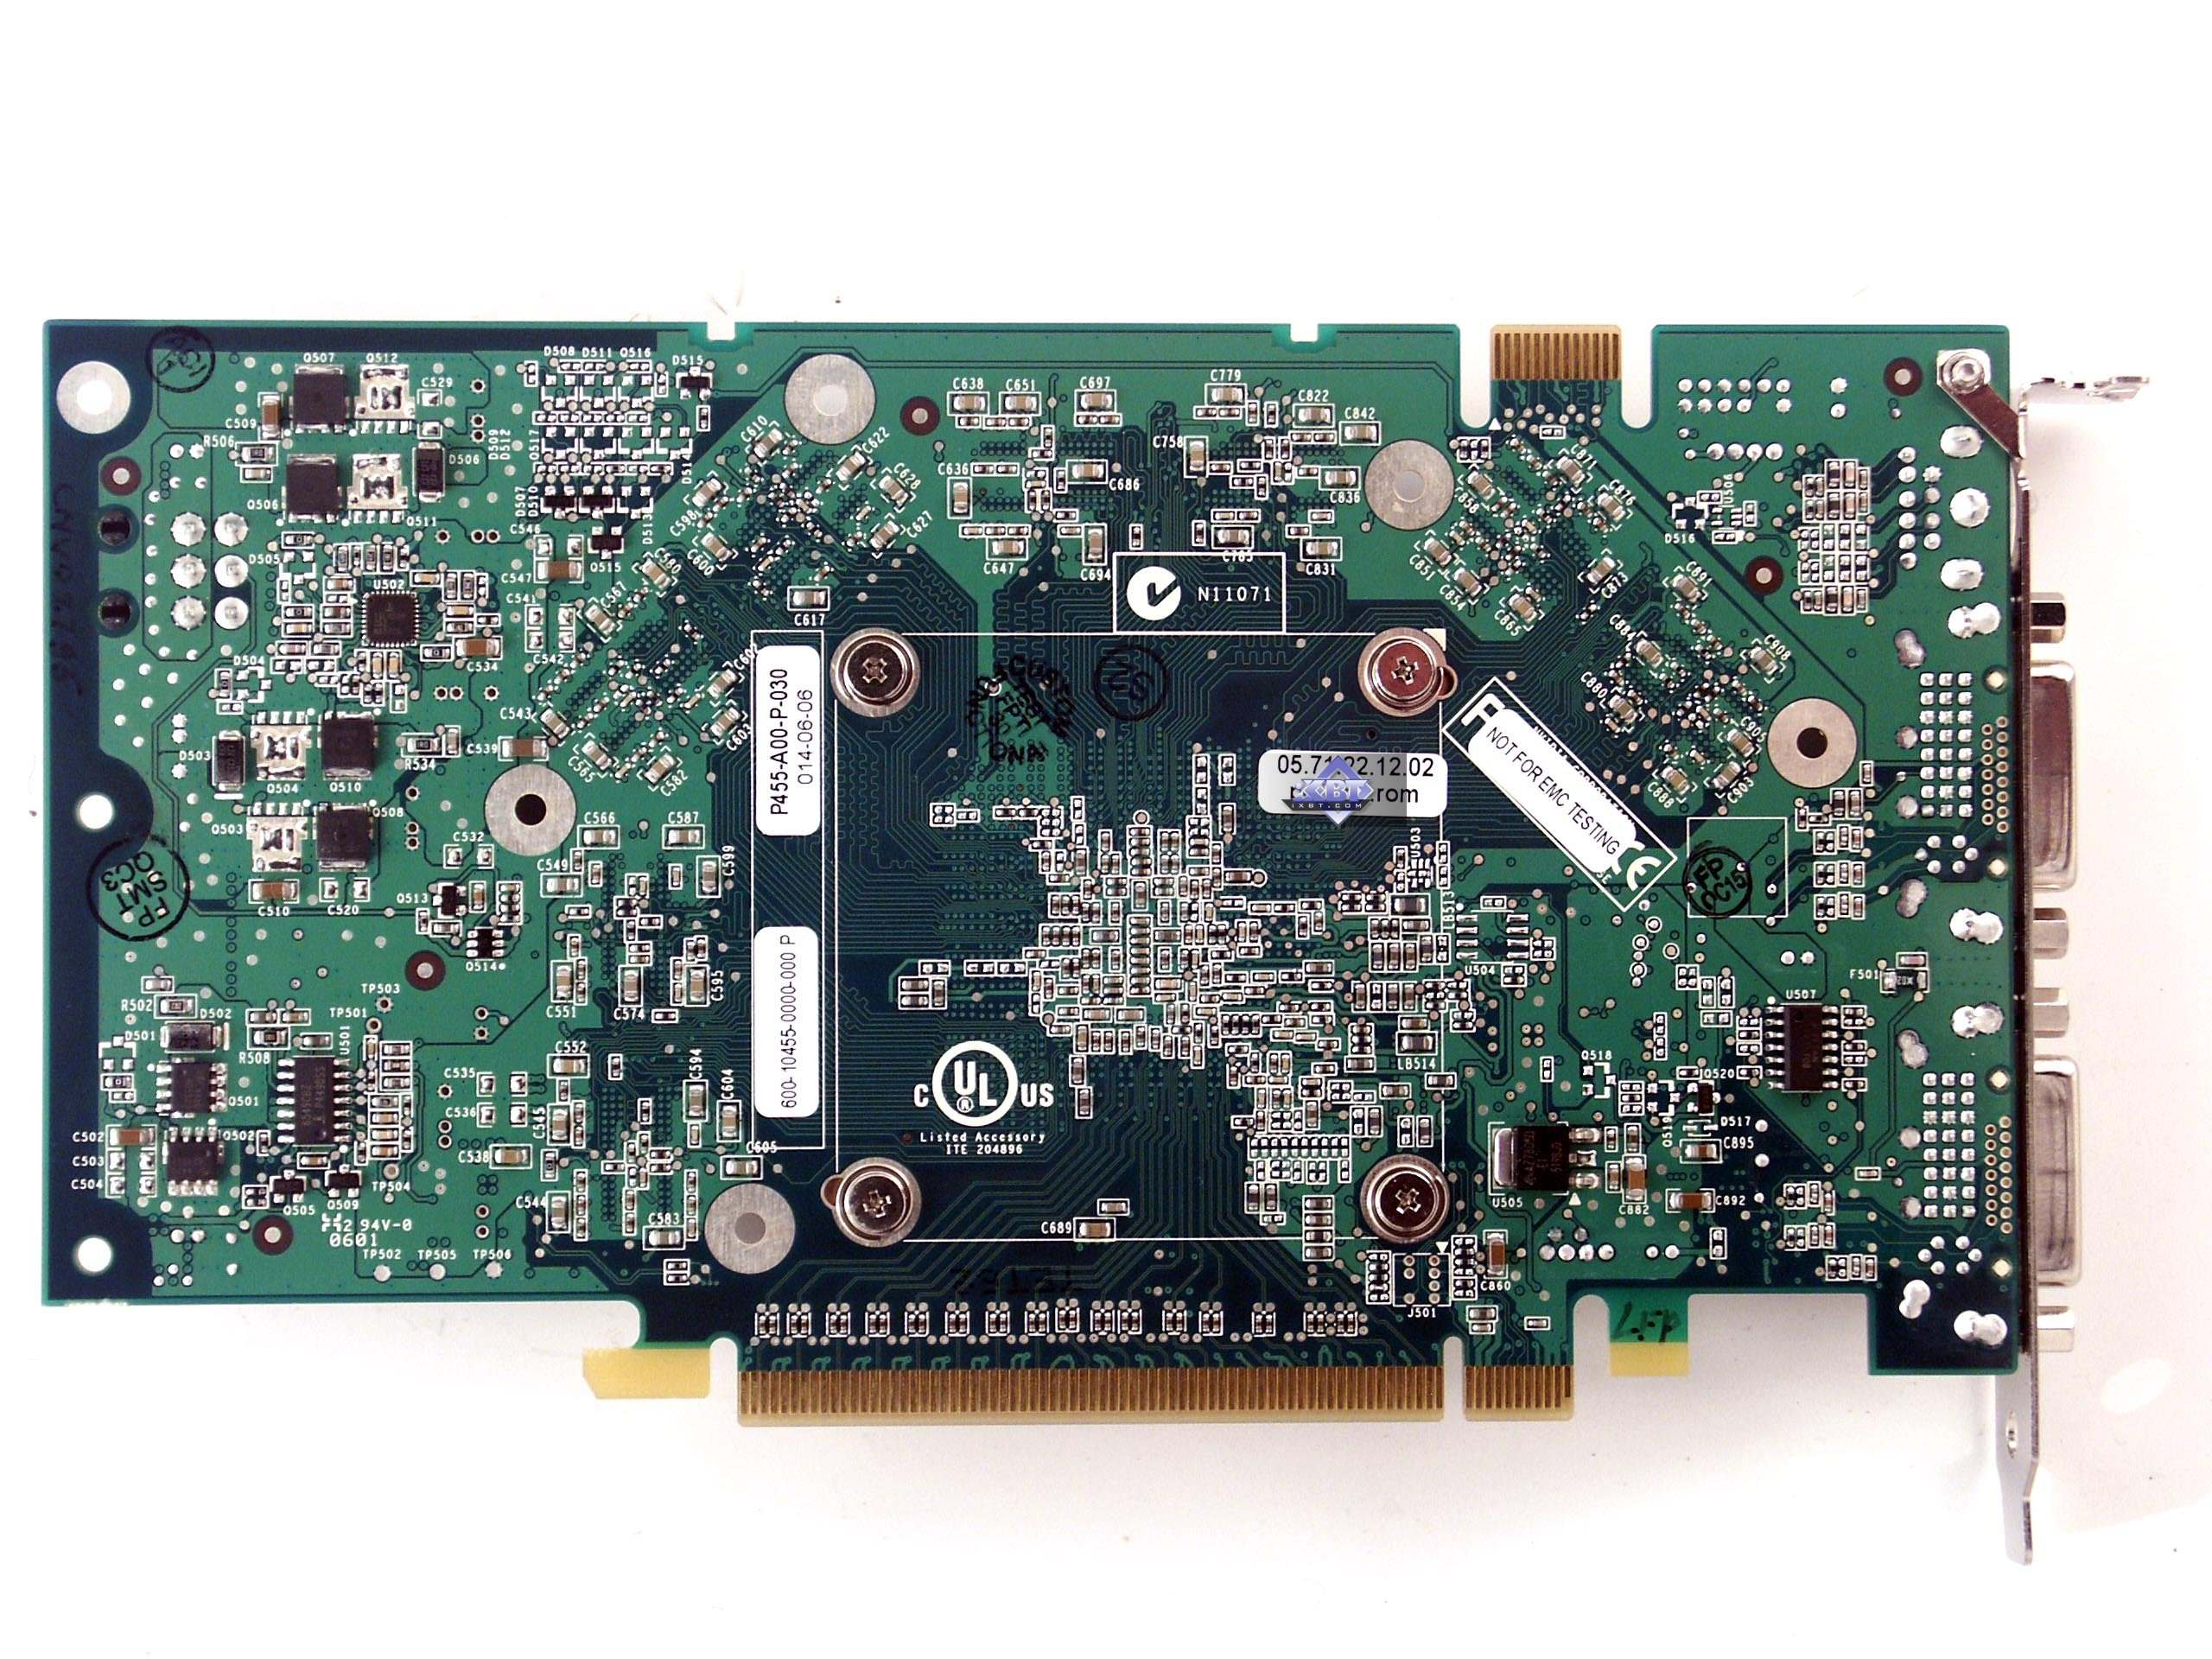 Asus A8R32-MVP DELUXE 0502 Driver PC